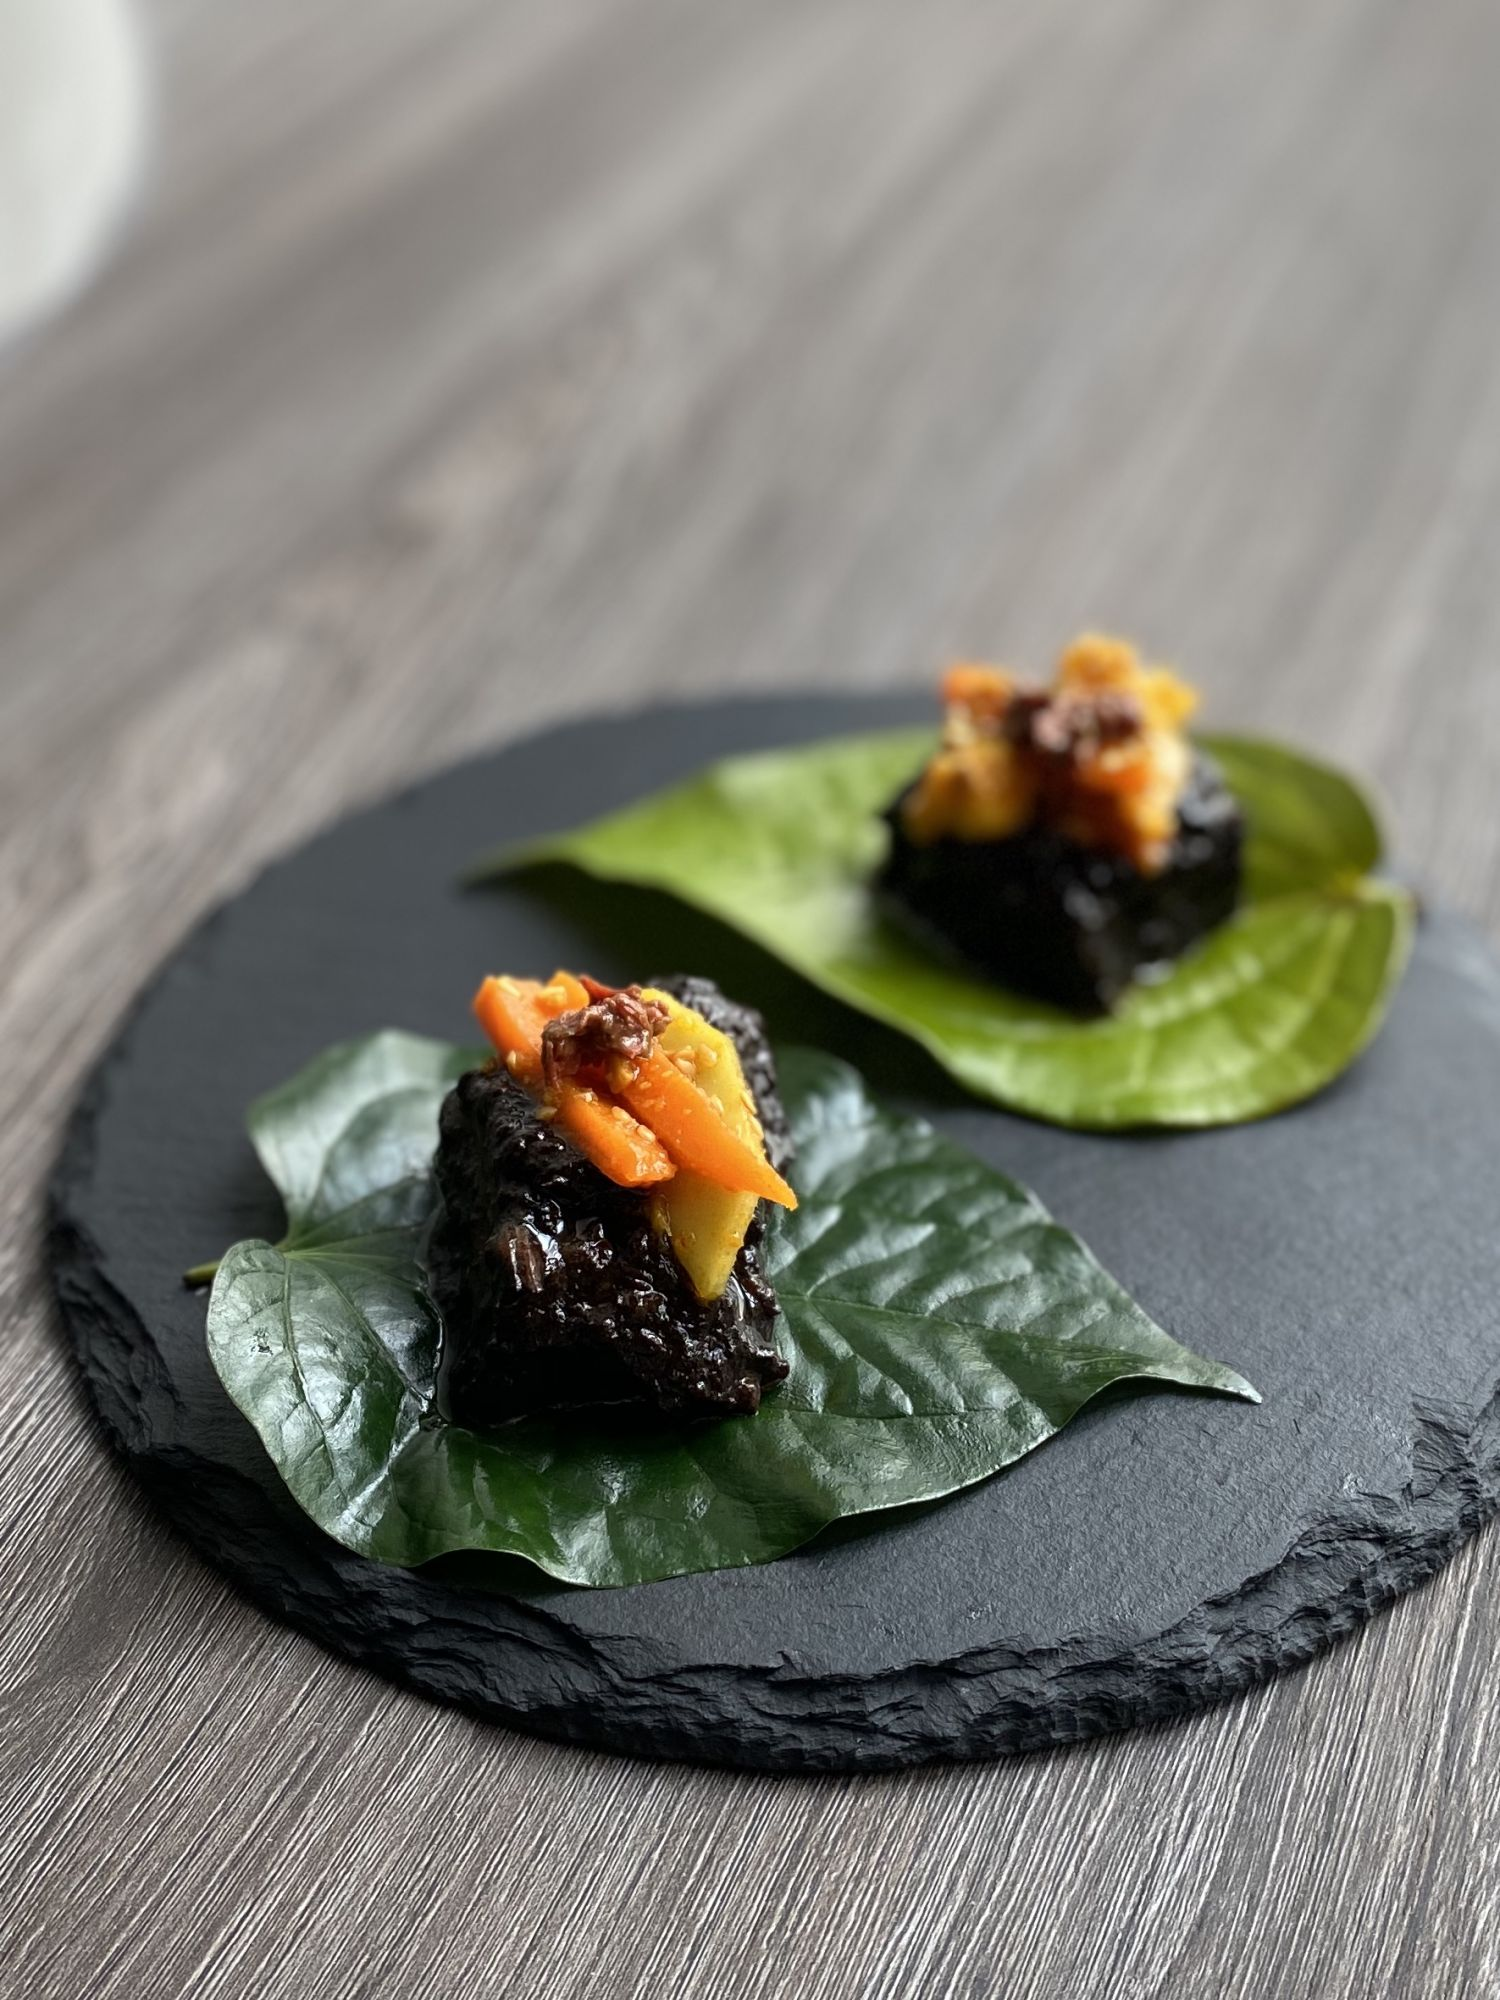 Mod-Sin Champions Willin Low and Annette Tan Collaborate to Showcase Their Creative Takes on Singapore Heritage Food